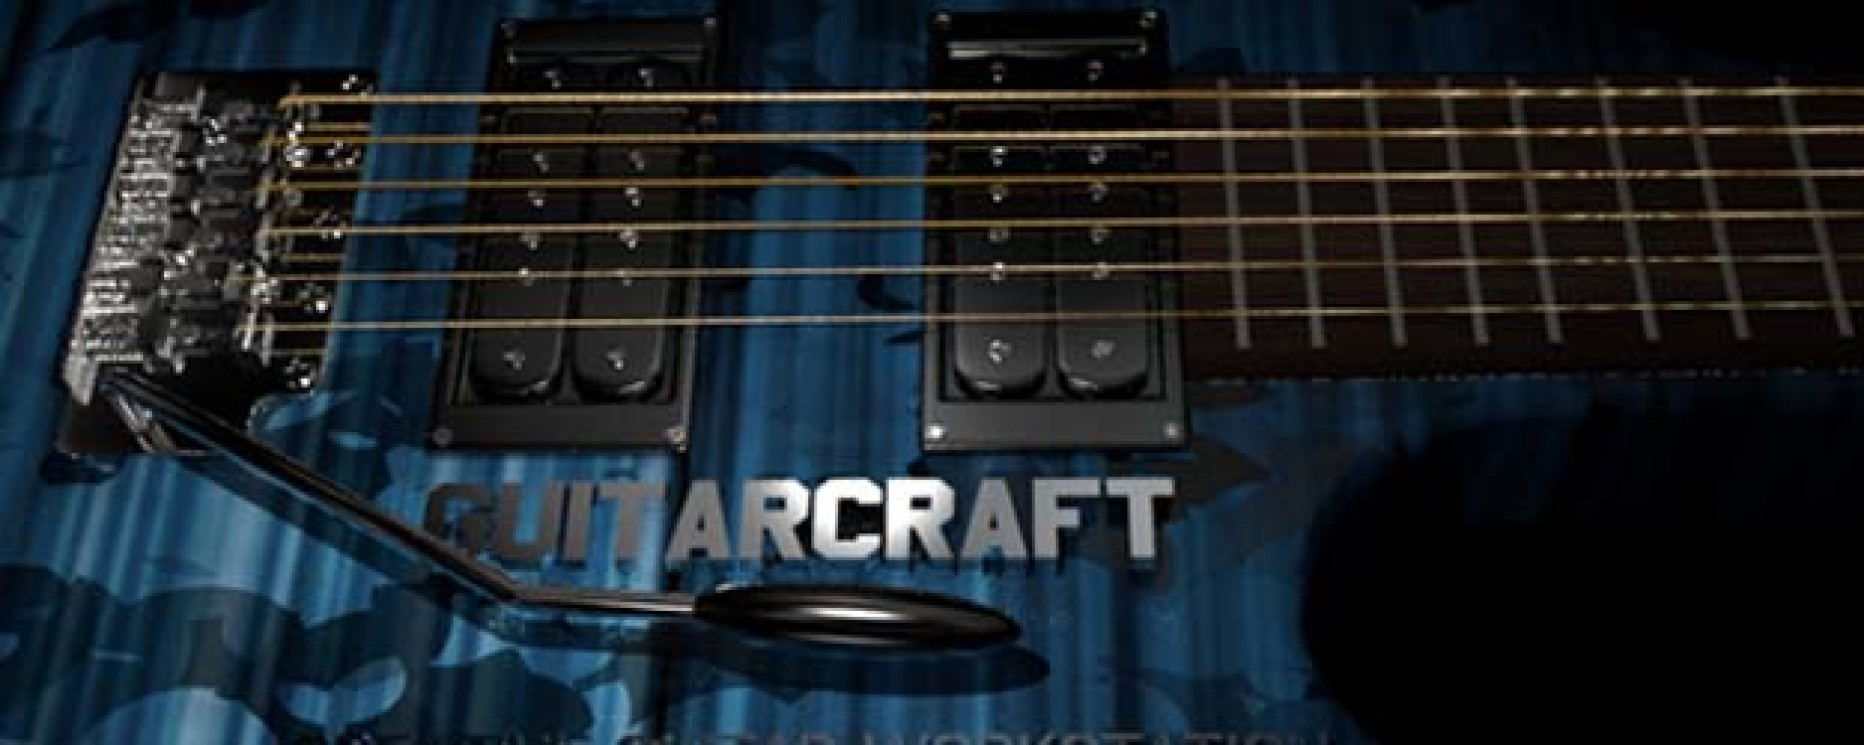 GuitarCraft – Electric Guitar Now Becomes Automated